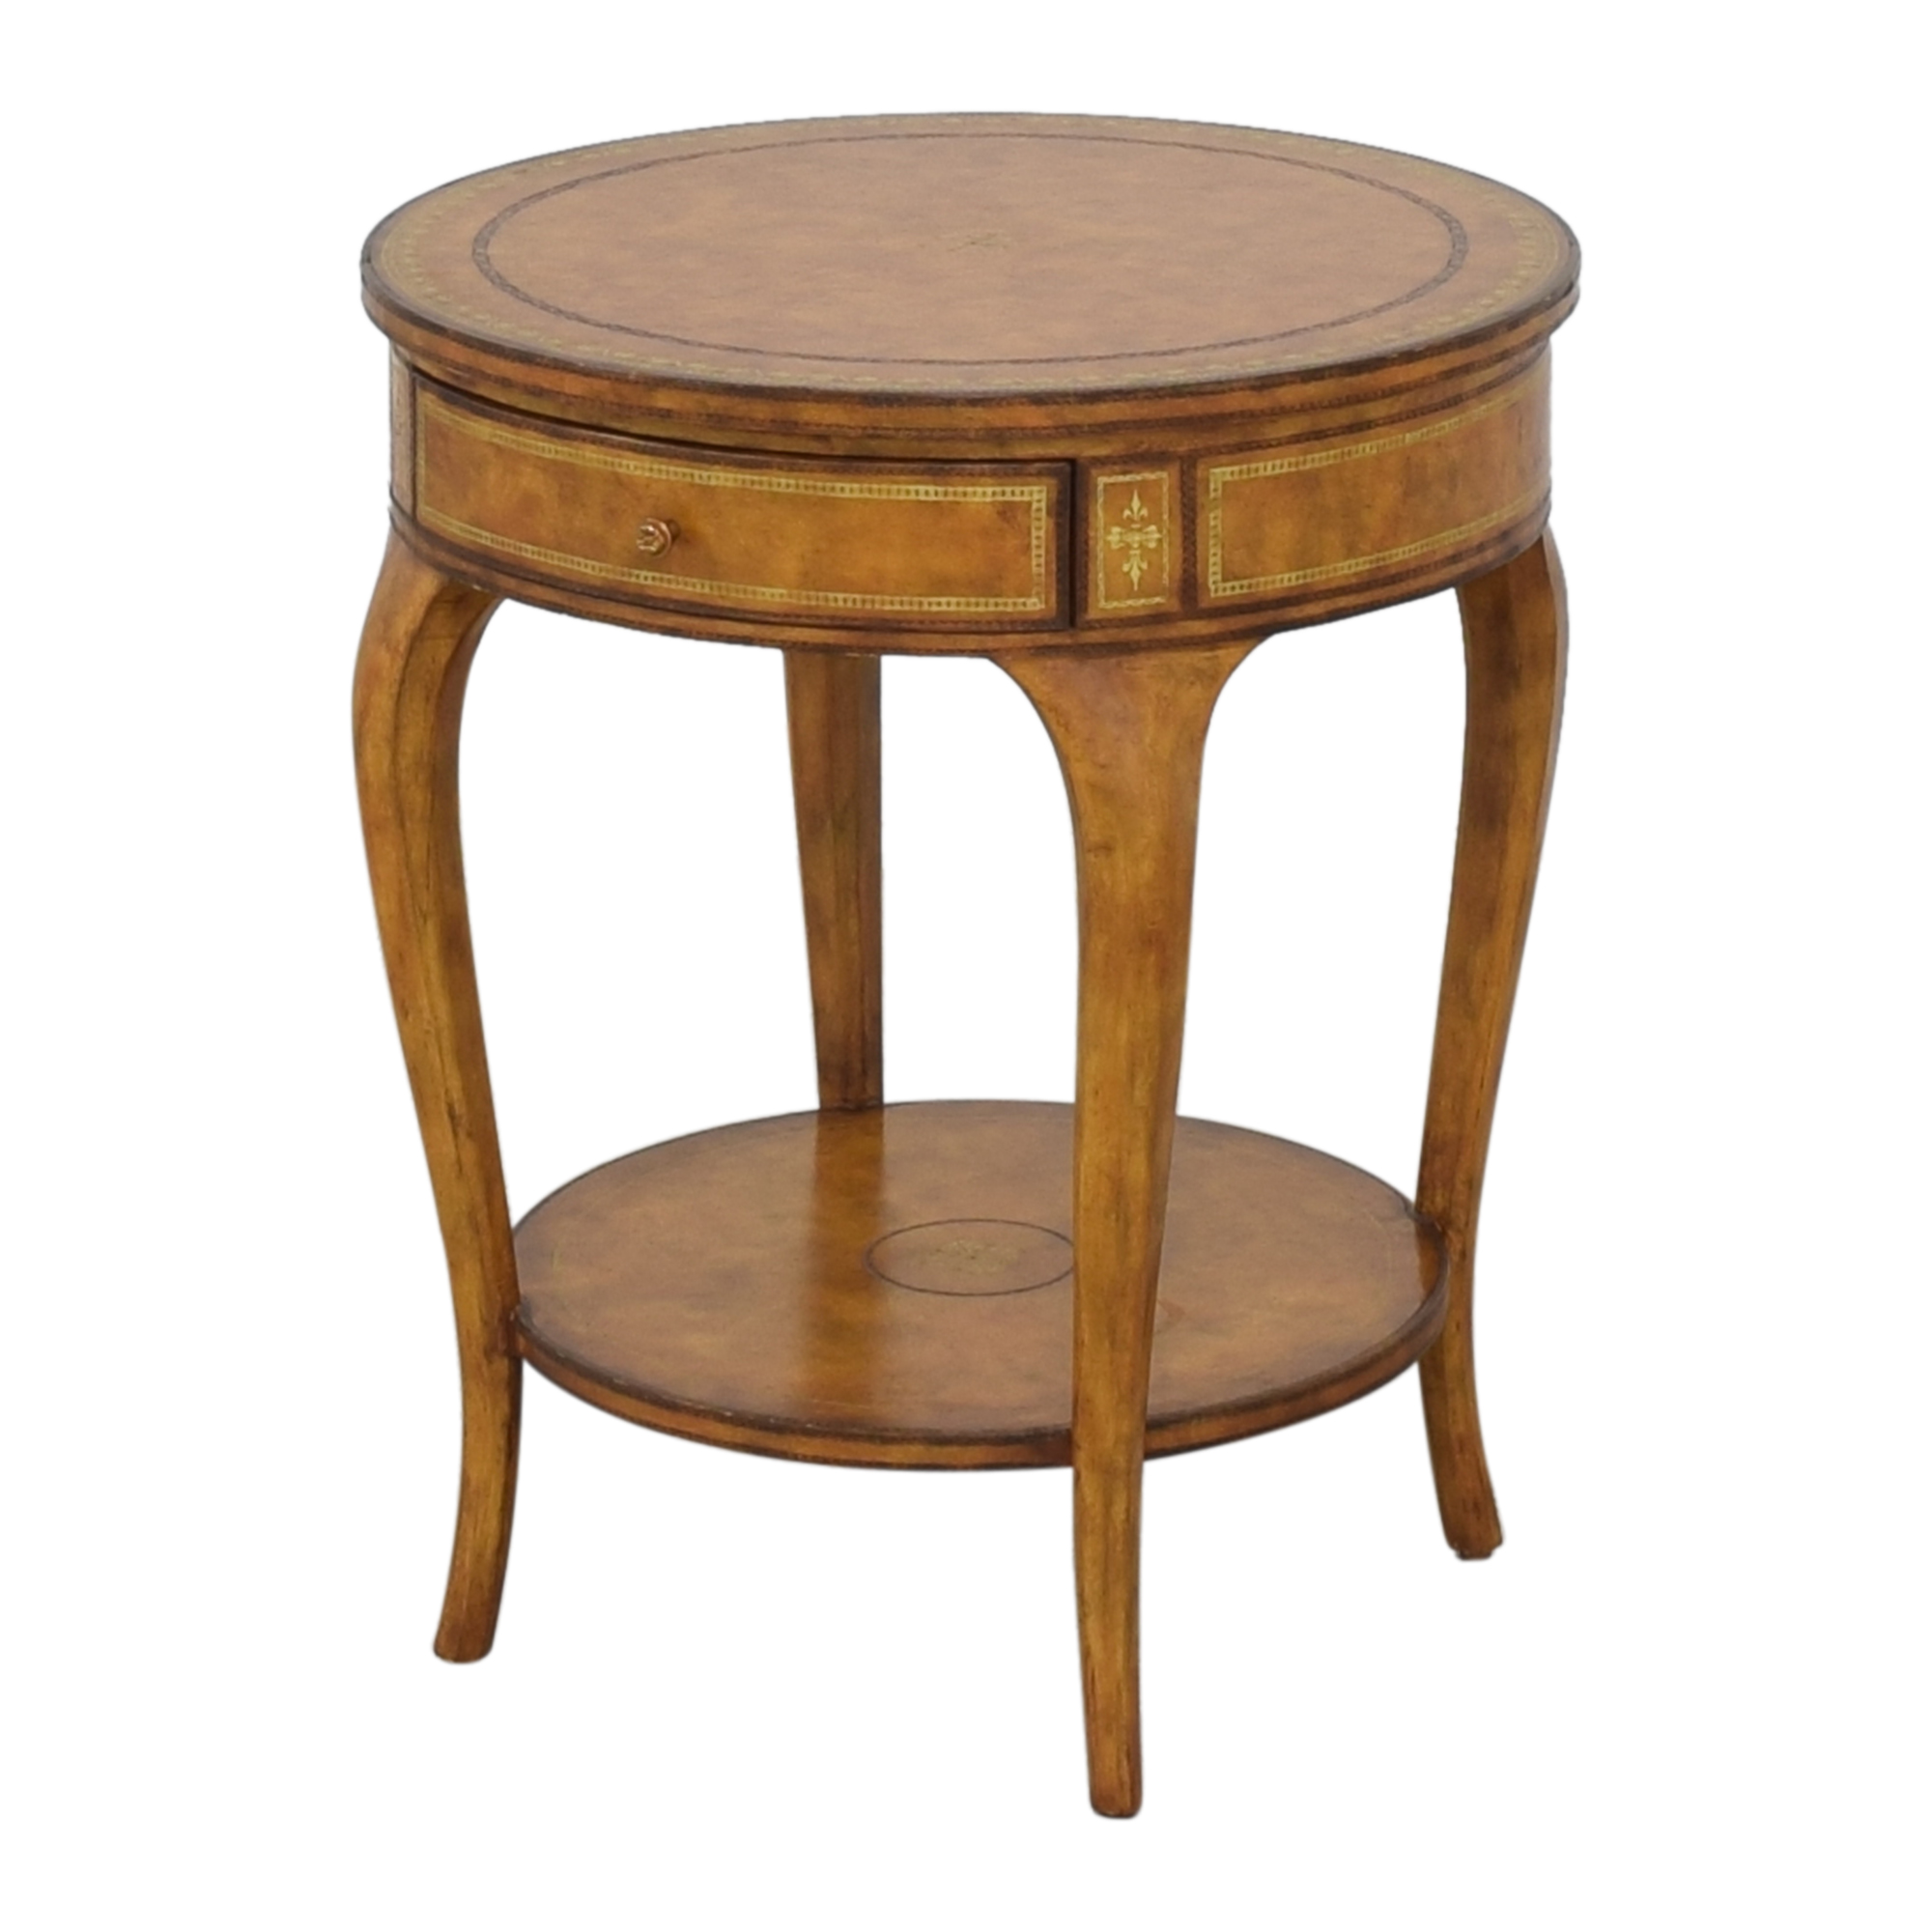 Maitland-Smith Maitland-Smith Round Accent Table Accent Tables